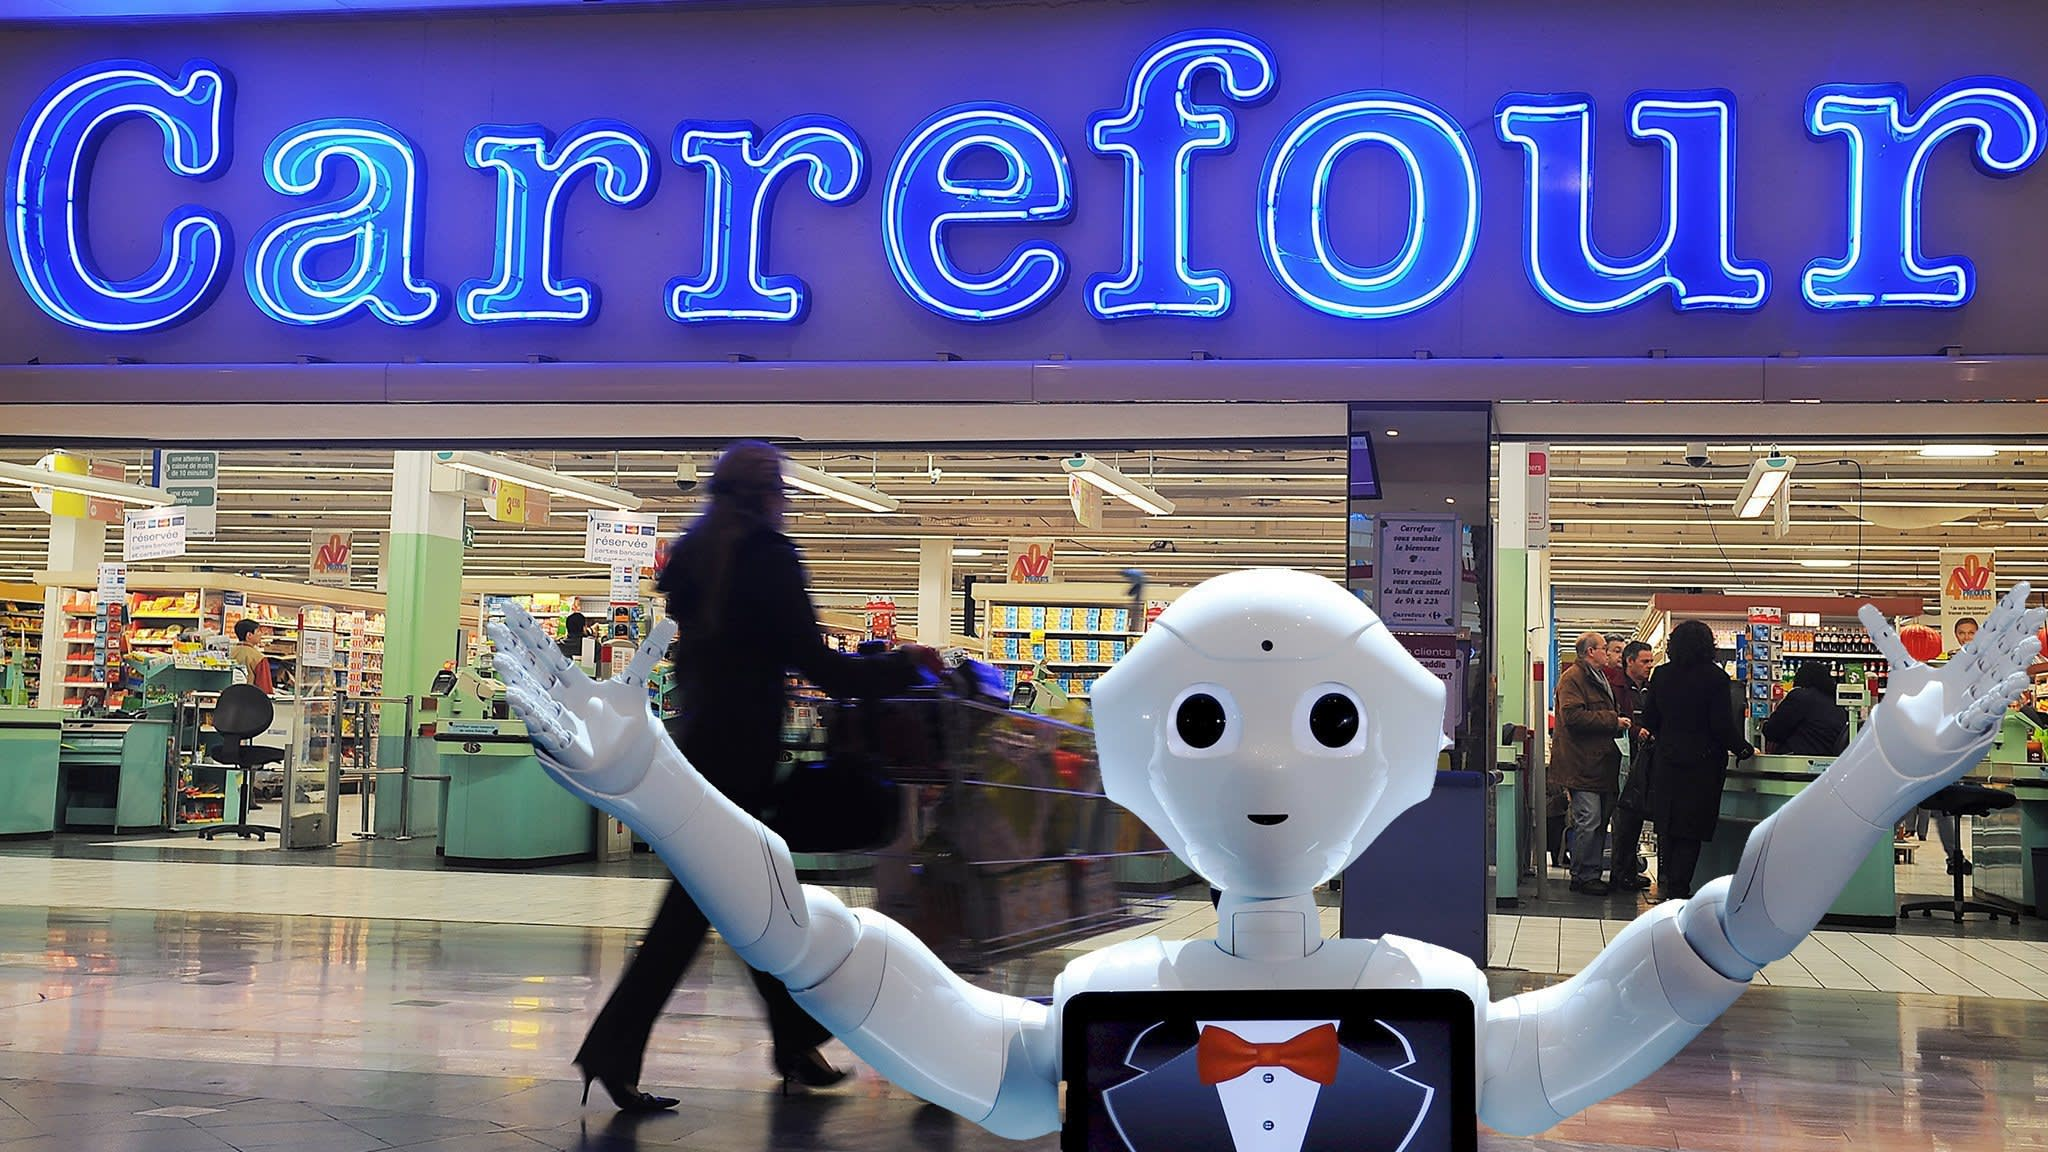 Carrefour partners with Google for digital push | Financial Times